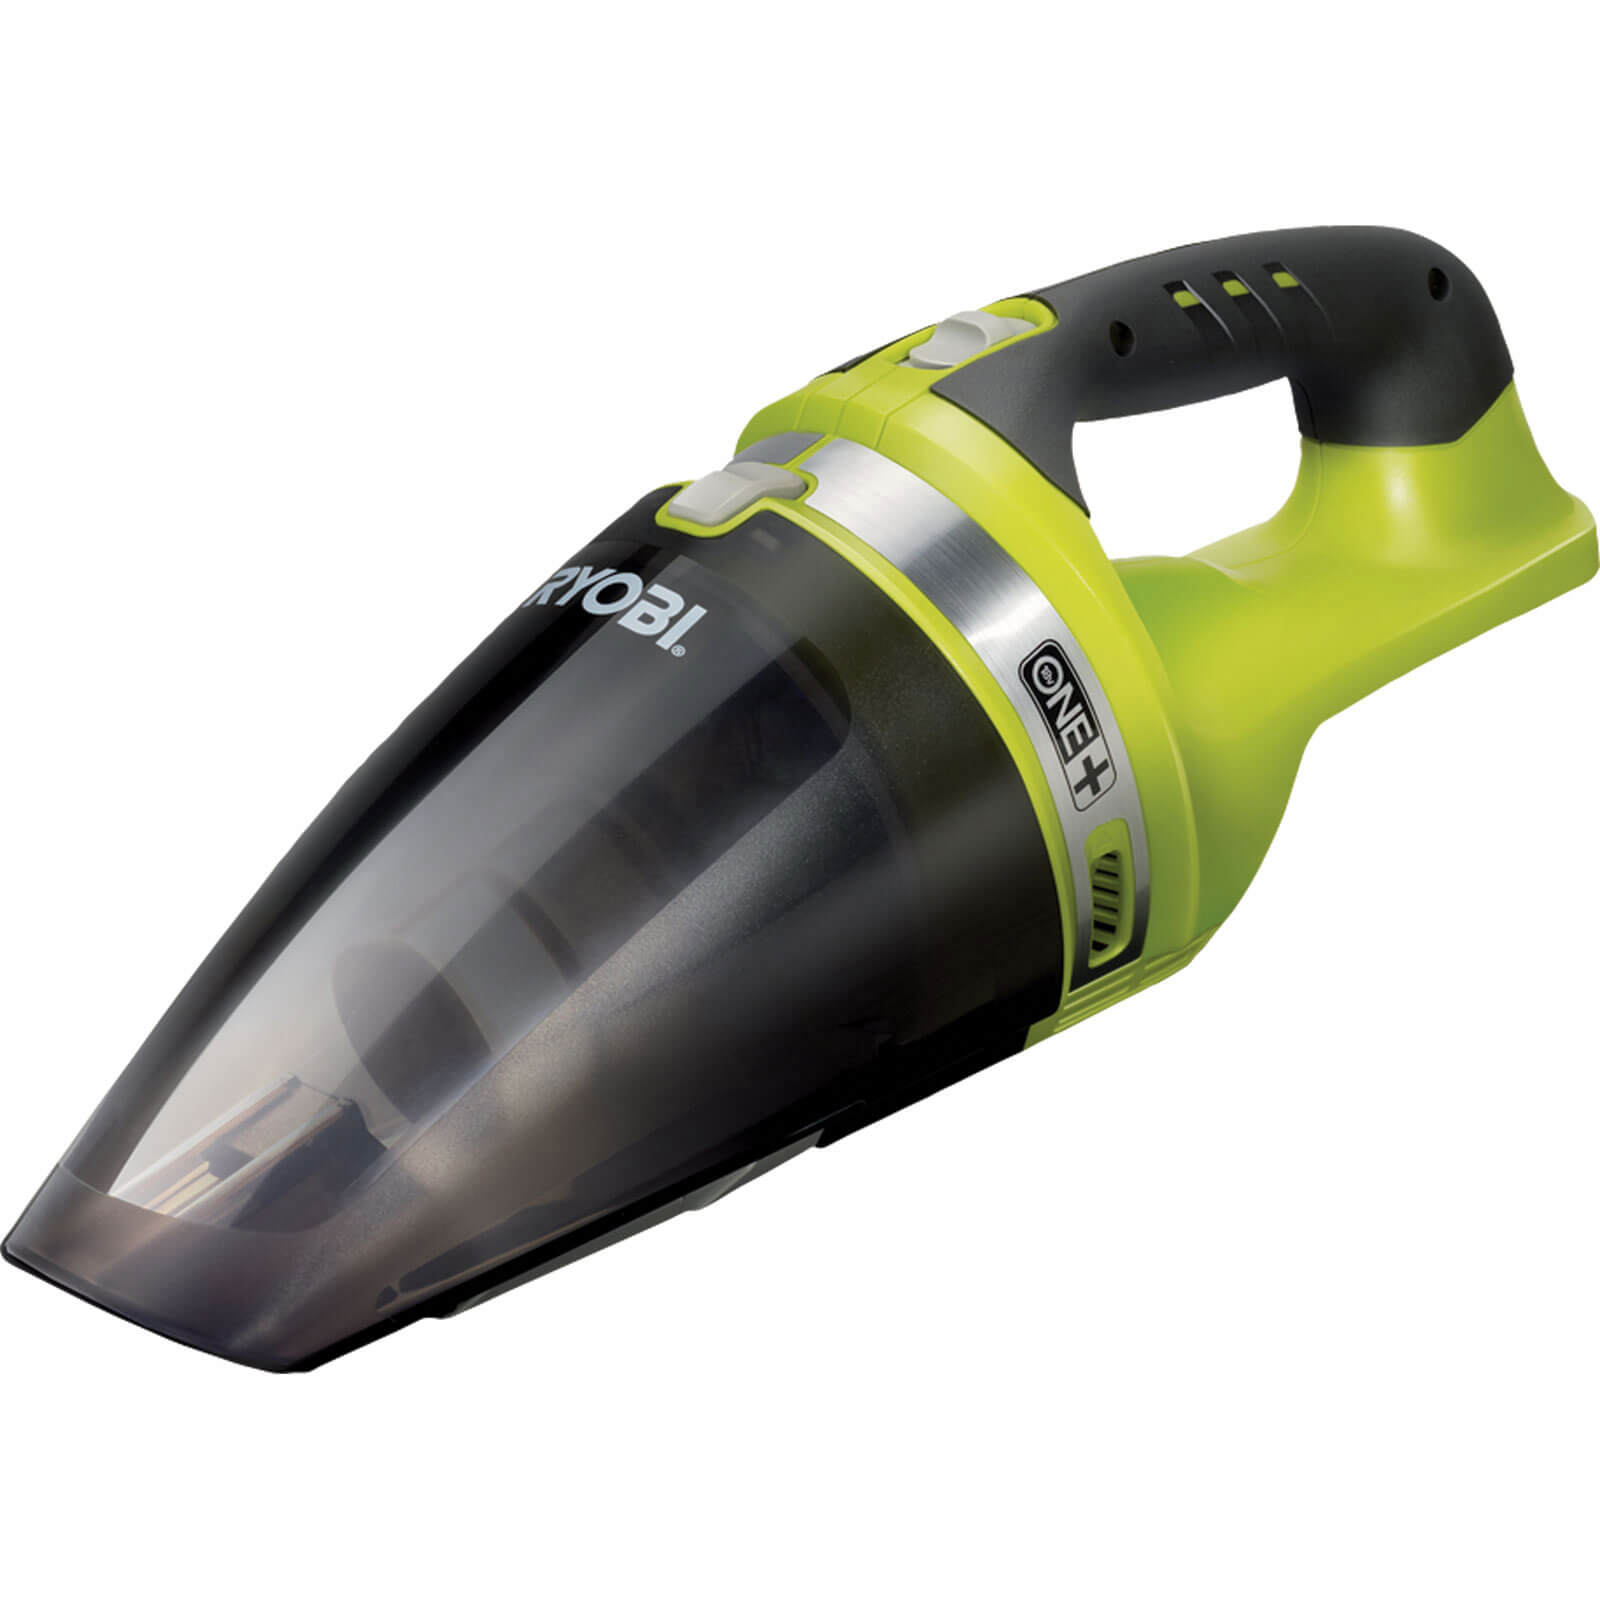 Ryobi CHV182M 18v Cordless Handheld Vacuum Cleaner No Batteries No Charger No Case